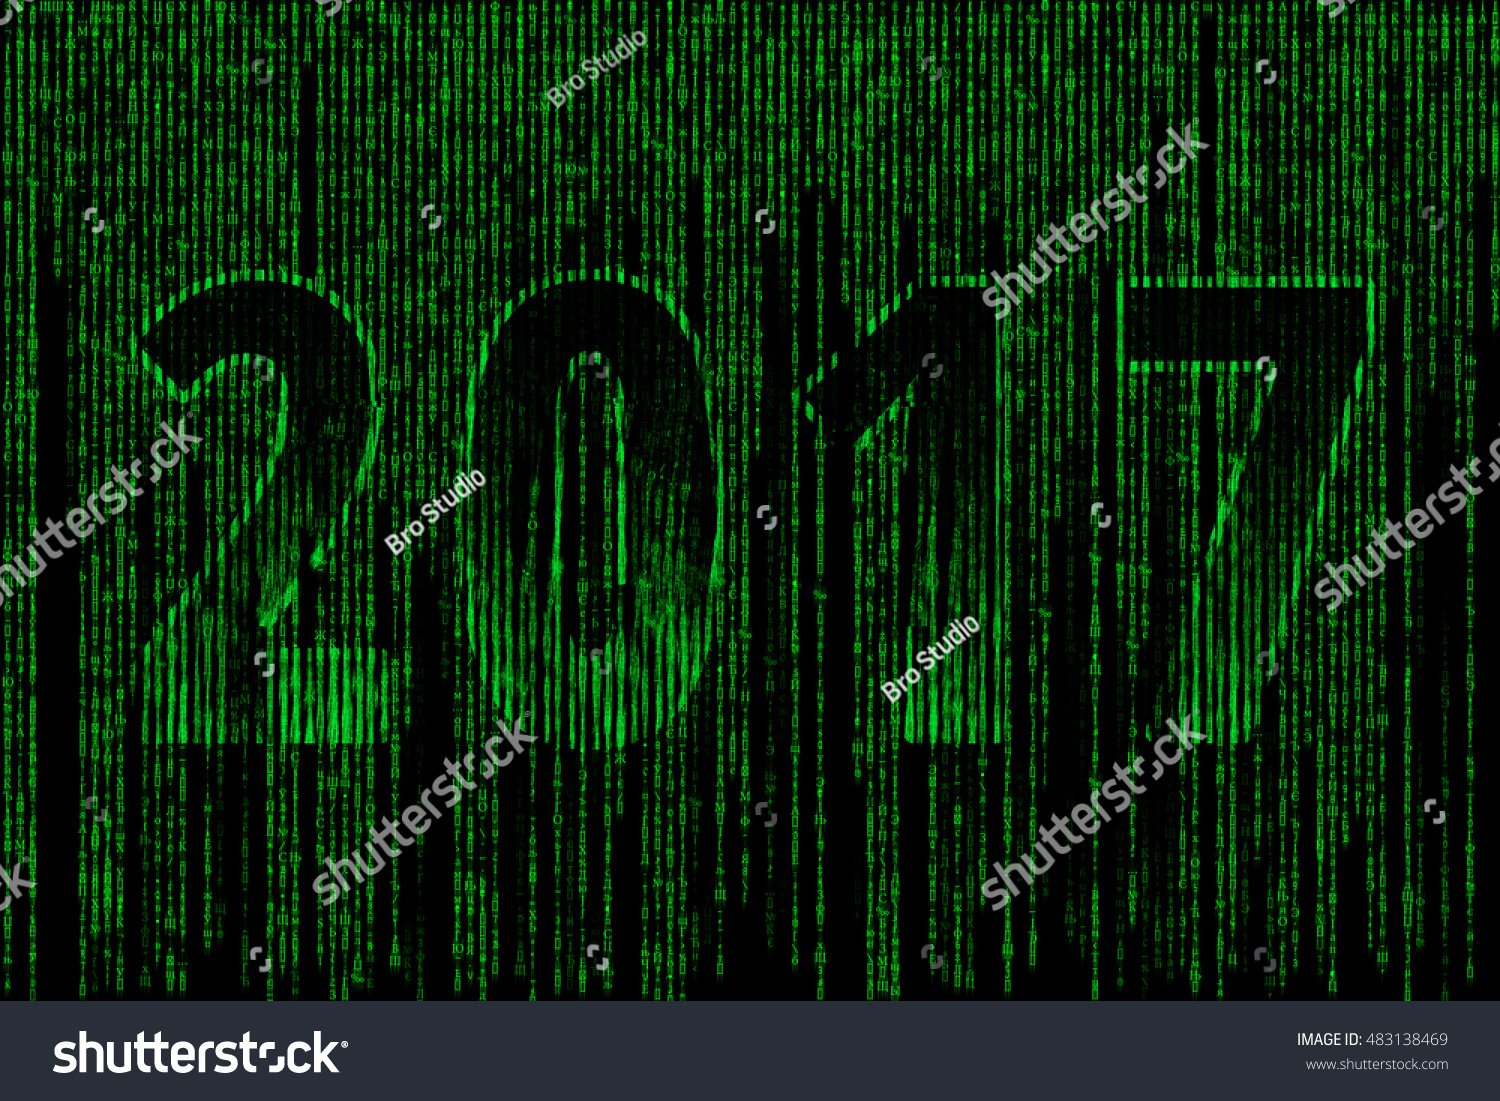 2017 style matrix figure 2017 consisting stock illustration 2017 in the style of matrix figure 2017 consisting of different symbols letters and numbers biocorpaavc